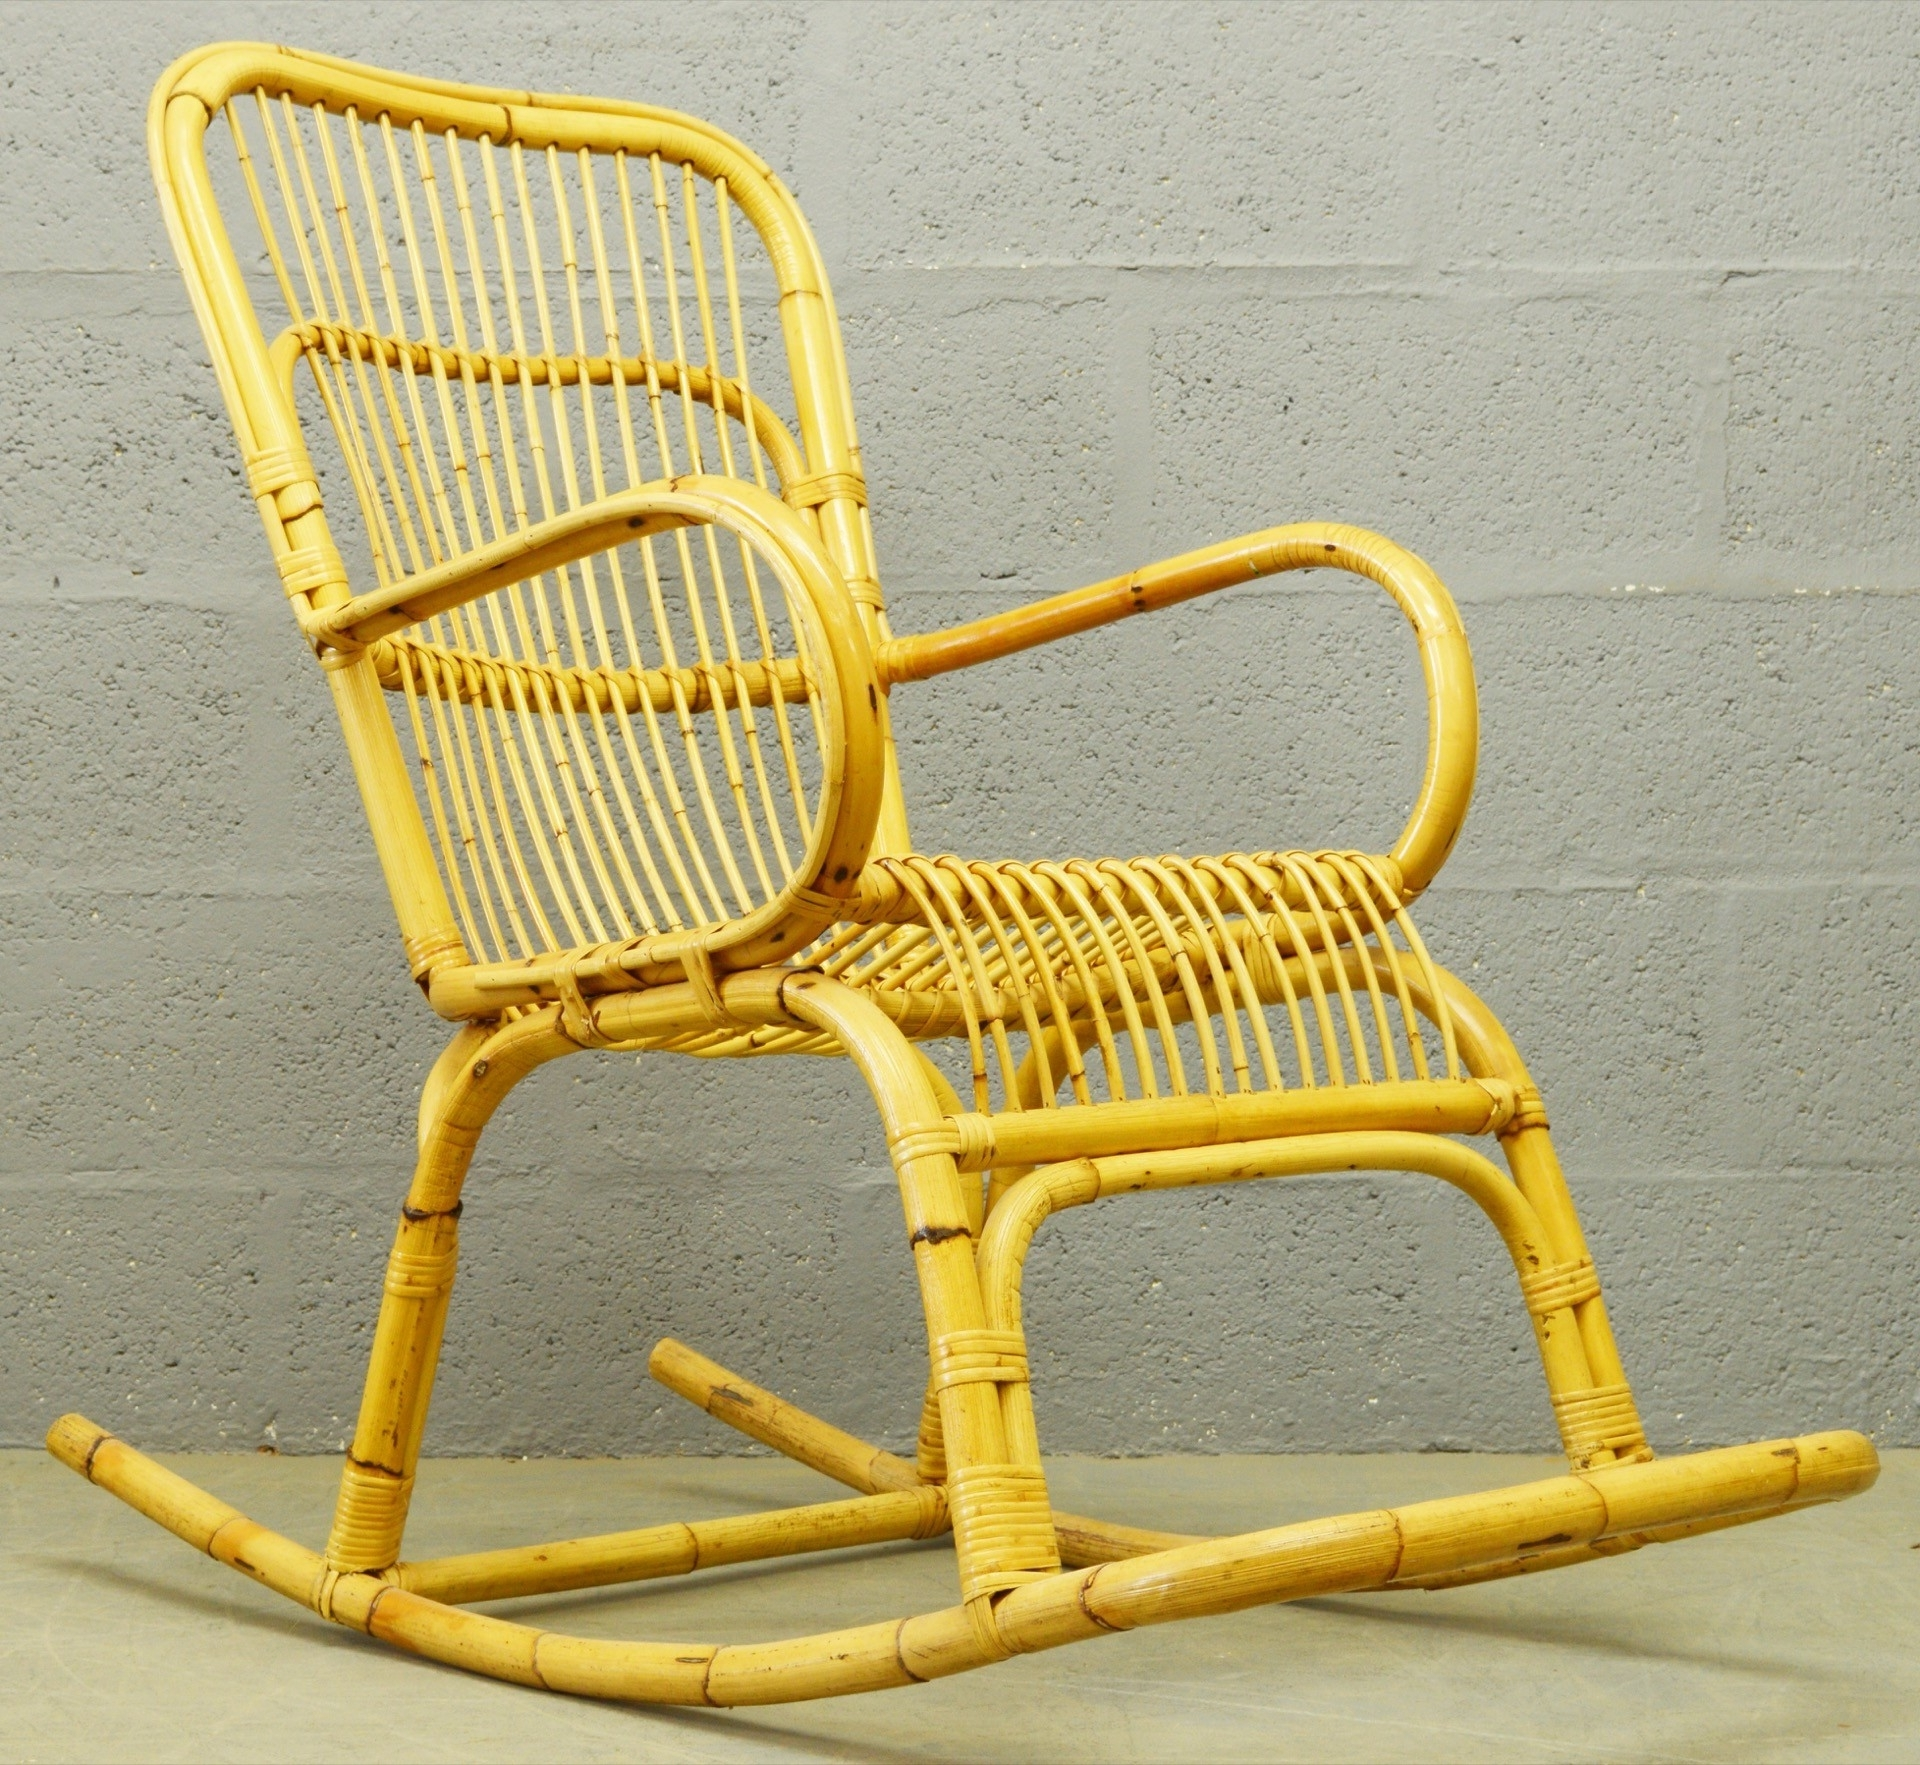 Wicker Rocking Chair With Magazine Holder In Famous Mid Century Bamboo And Rattan Rocking Chair – 1960S – Design Market (View 8 of 15)